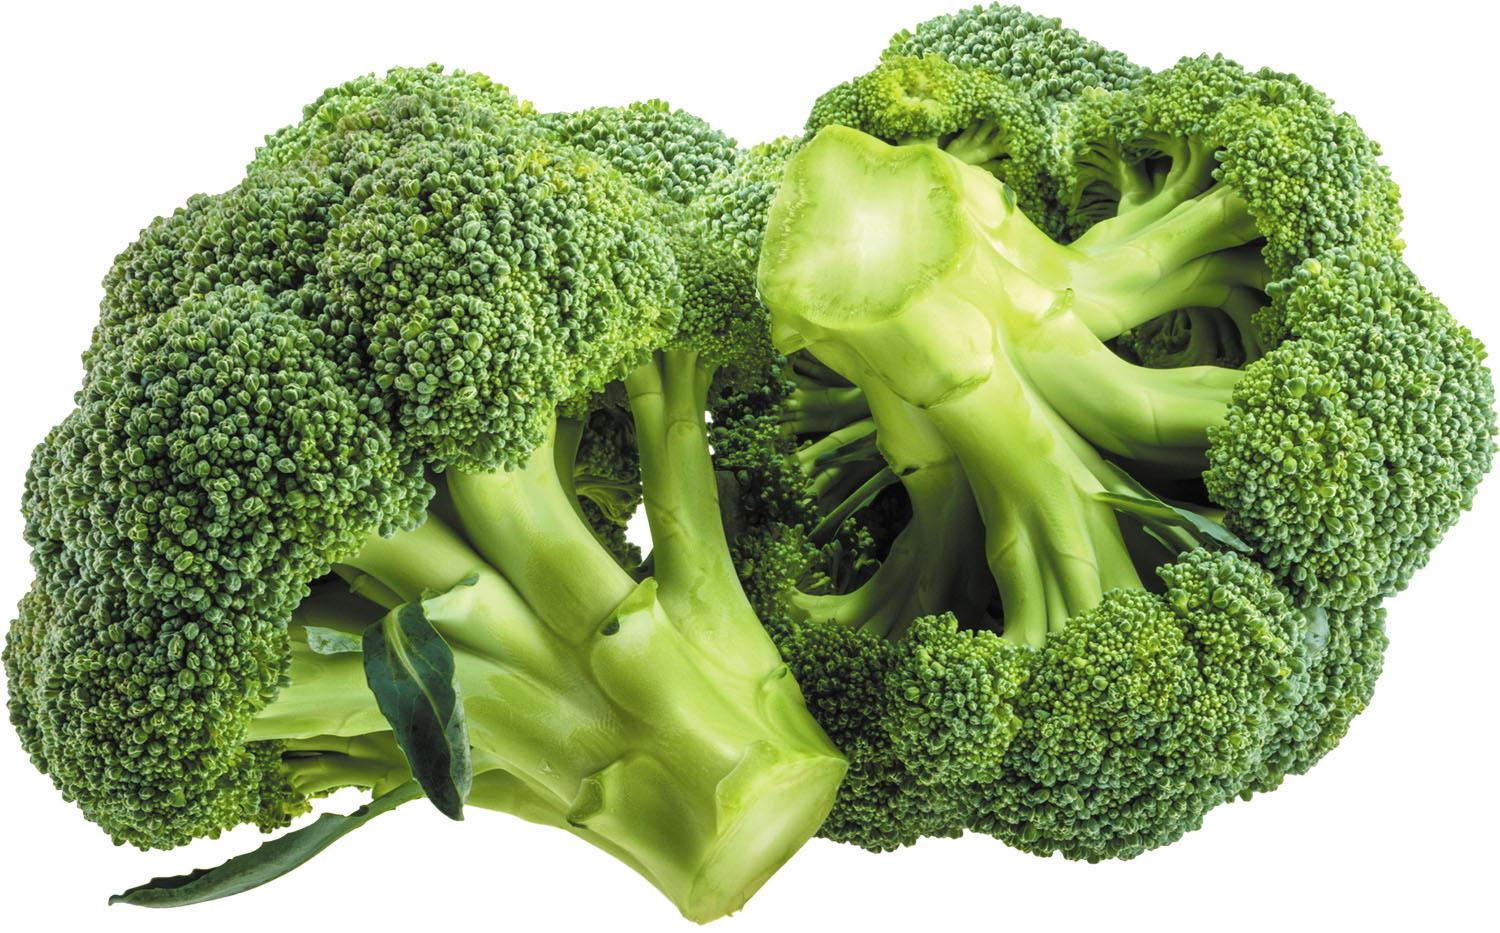 Vegetable of the month: Broccoli - Harvard Health